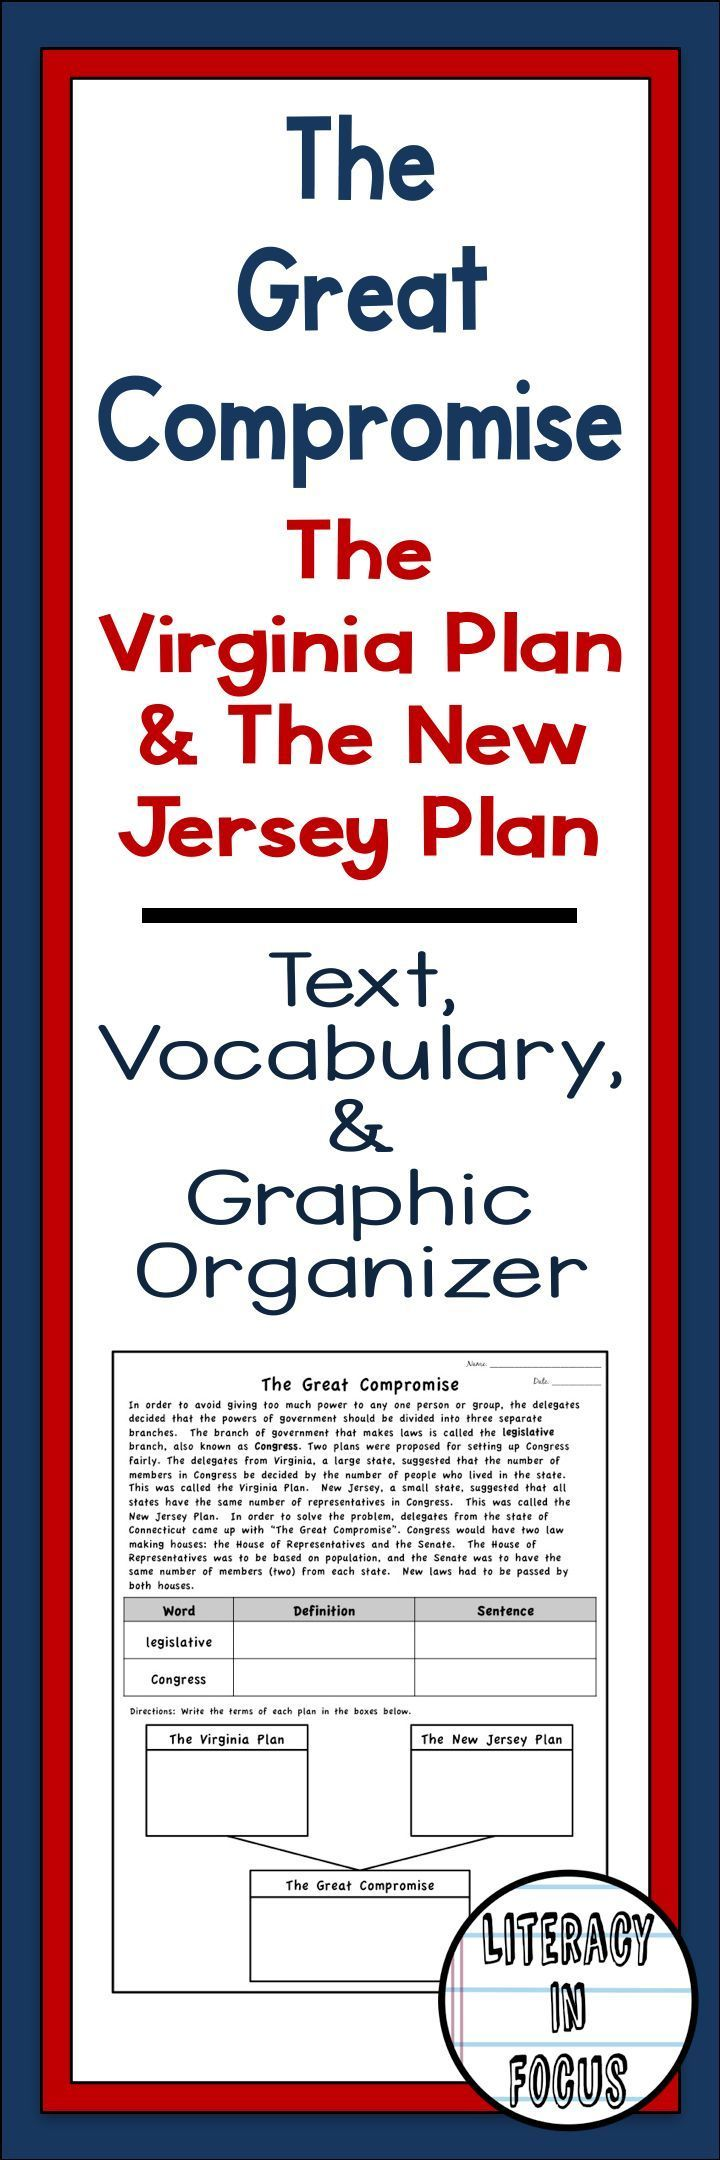 the virginia plan & the new jersey plan: the great compromise | u.s.